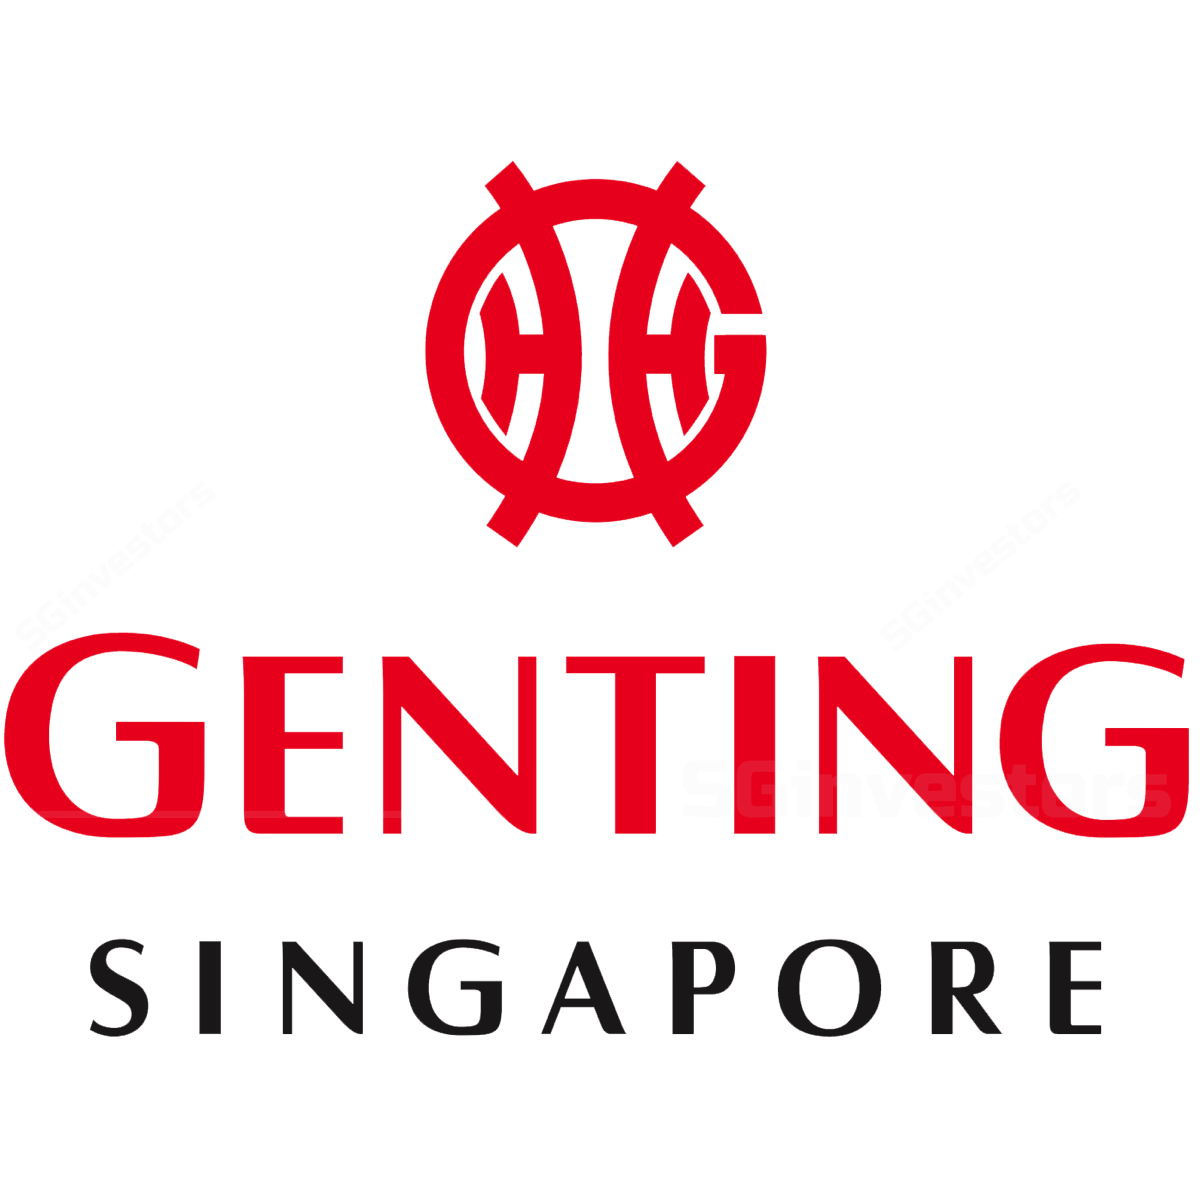 Genting Singapore - OCBC Investment 2017-02-23: Solid Set Of Results - Upgrade To BUY